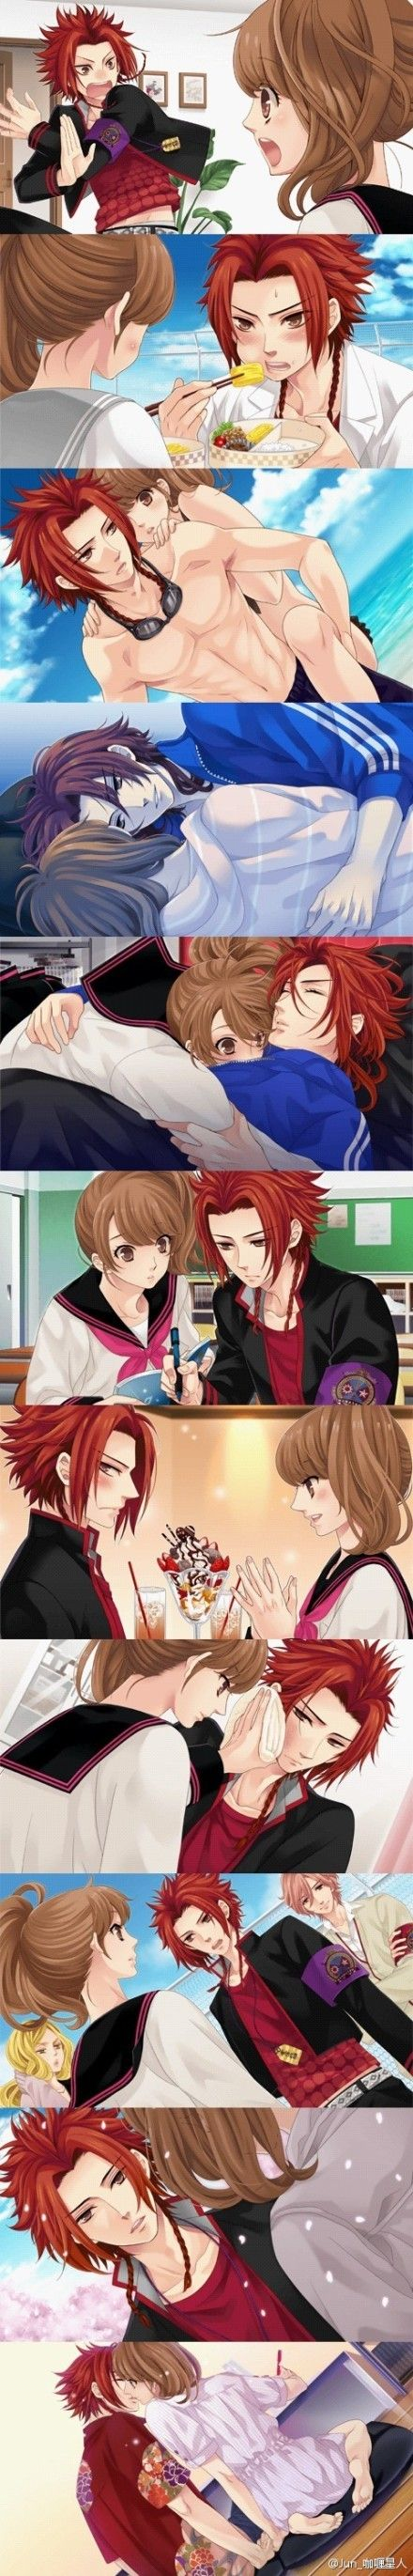 Brothers conflict- Yuusuke is my favourite! You know: has a secret crush on her. very adorable :3